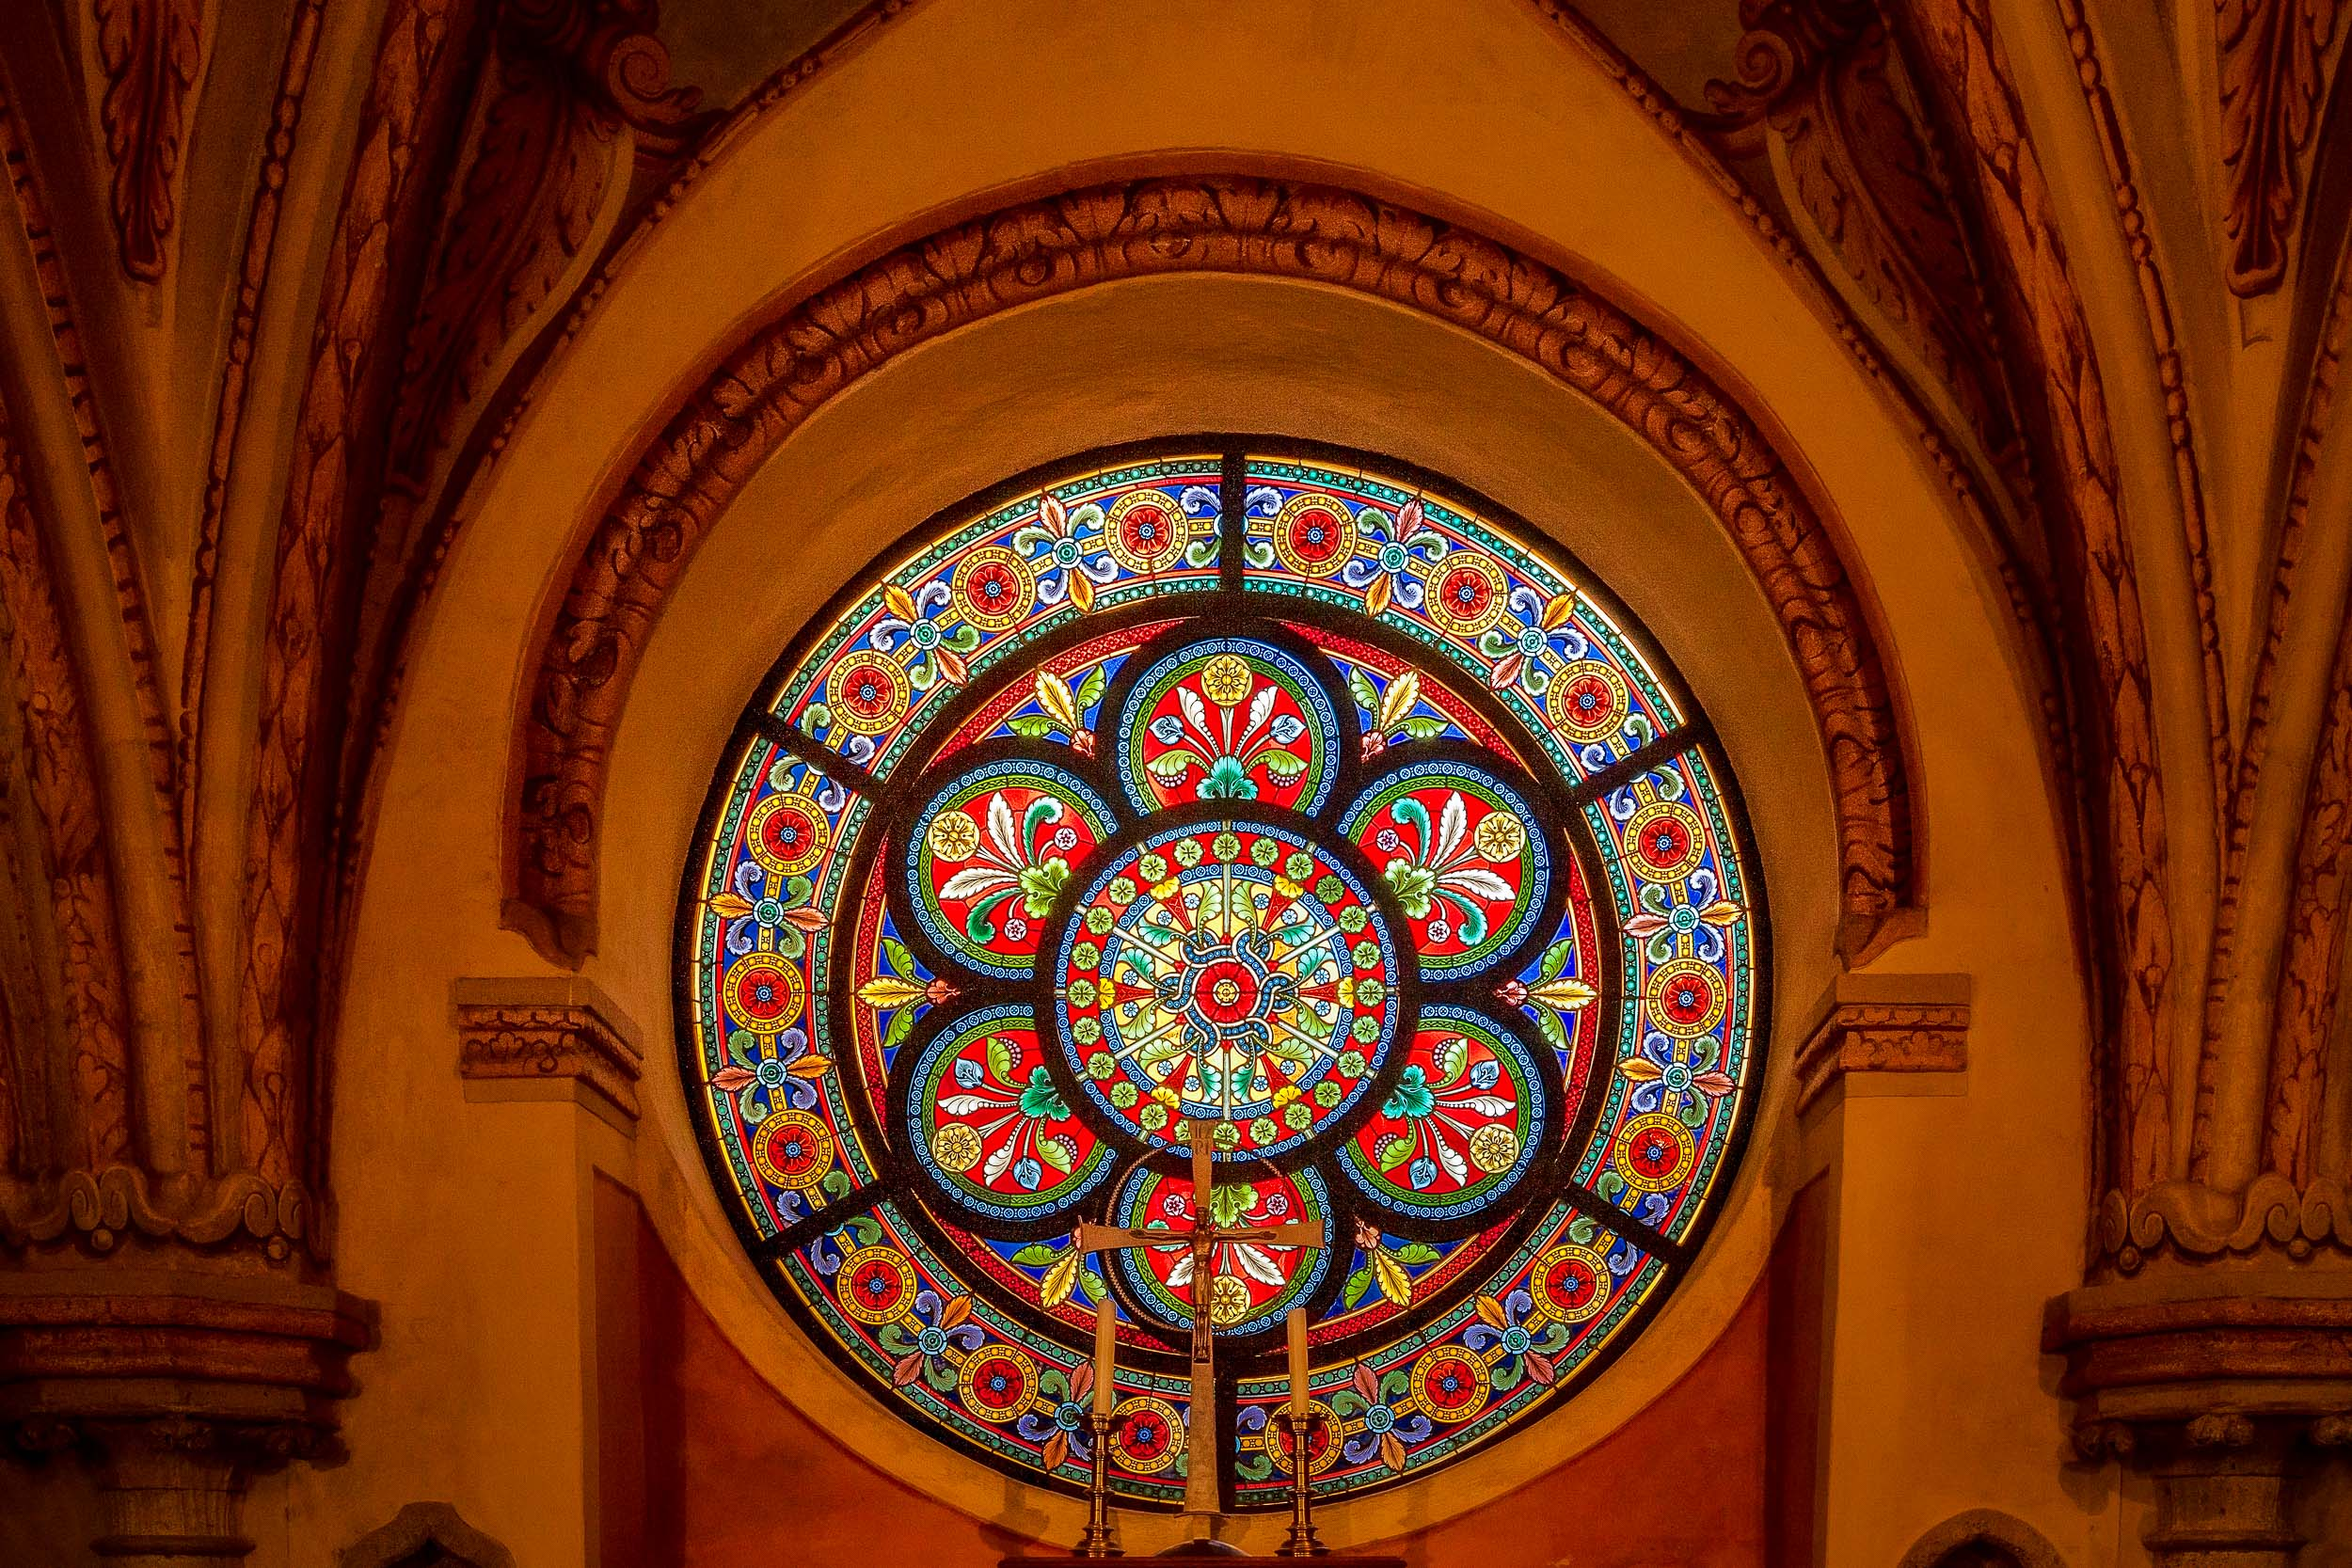 A spectacular  stained glass window  in the  chapel  where the body of  Duke Frederick II rests  at  Helligenkreuz Abbey  in  Austria .